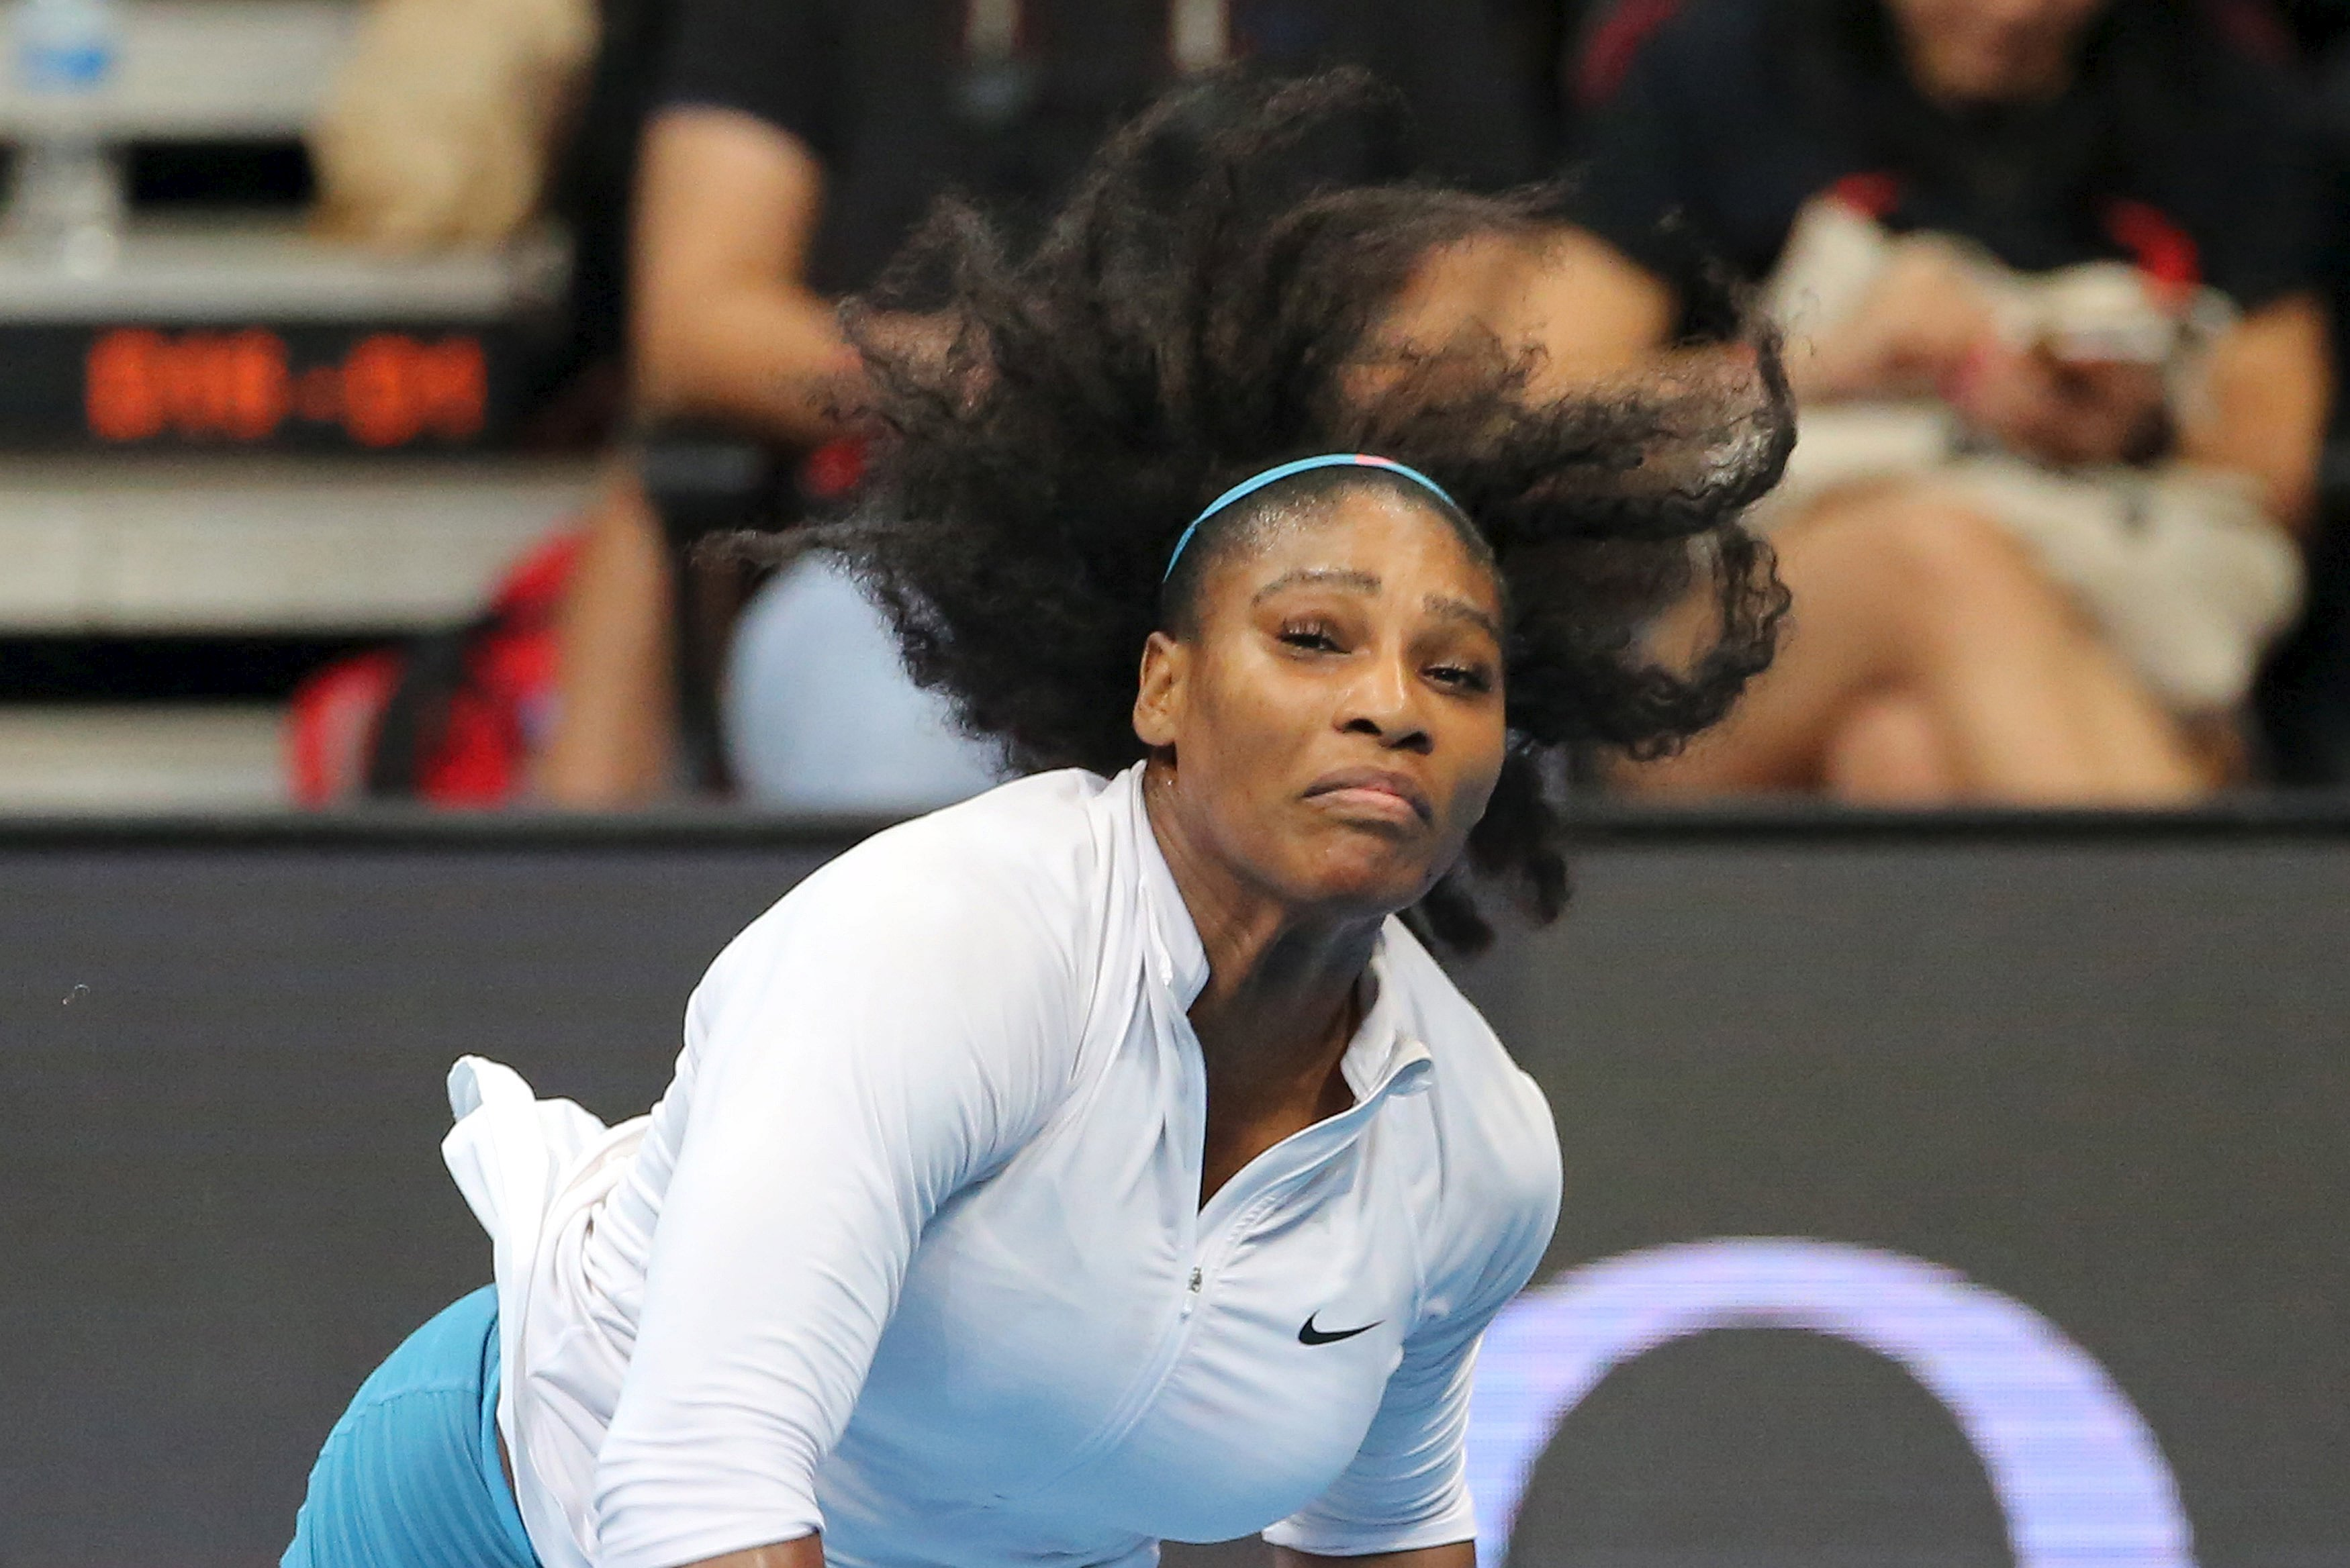 Manila Mavericks player Serena Williams of the United States plays against the Legendari Japan Warriors player Mirjana Lucic-Baroni of Germany during their women's singles match in the International Premier Tennis League in Pasay City, Philippines, on December 7, 2015. Photo: Reuters